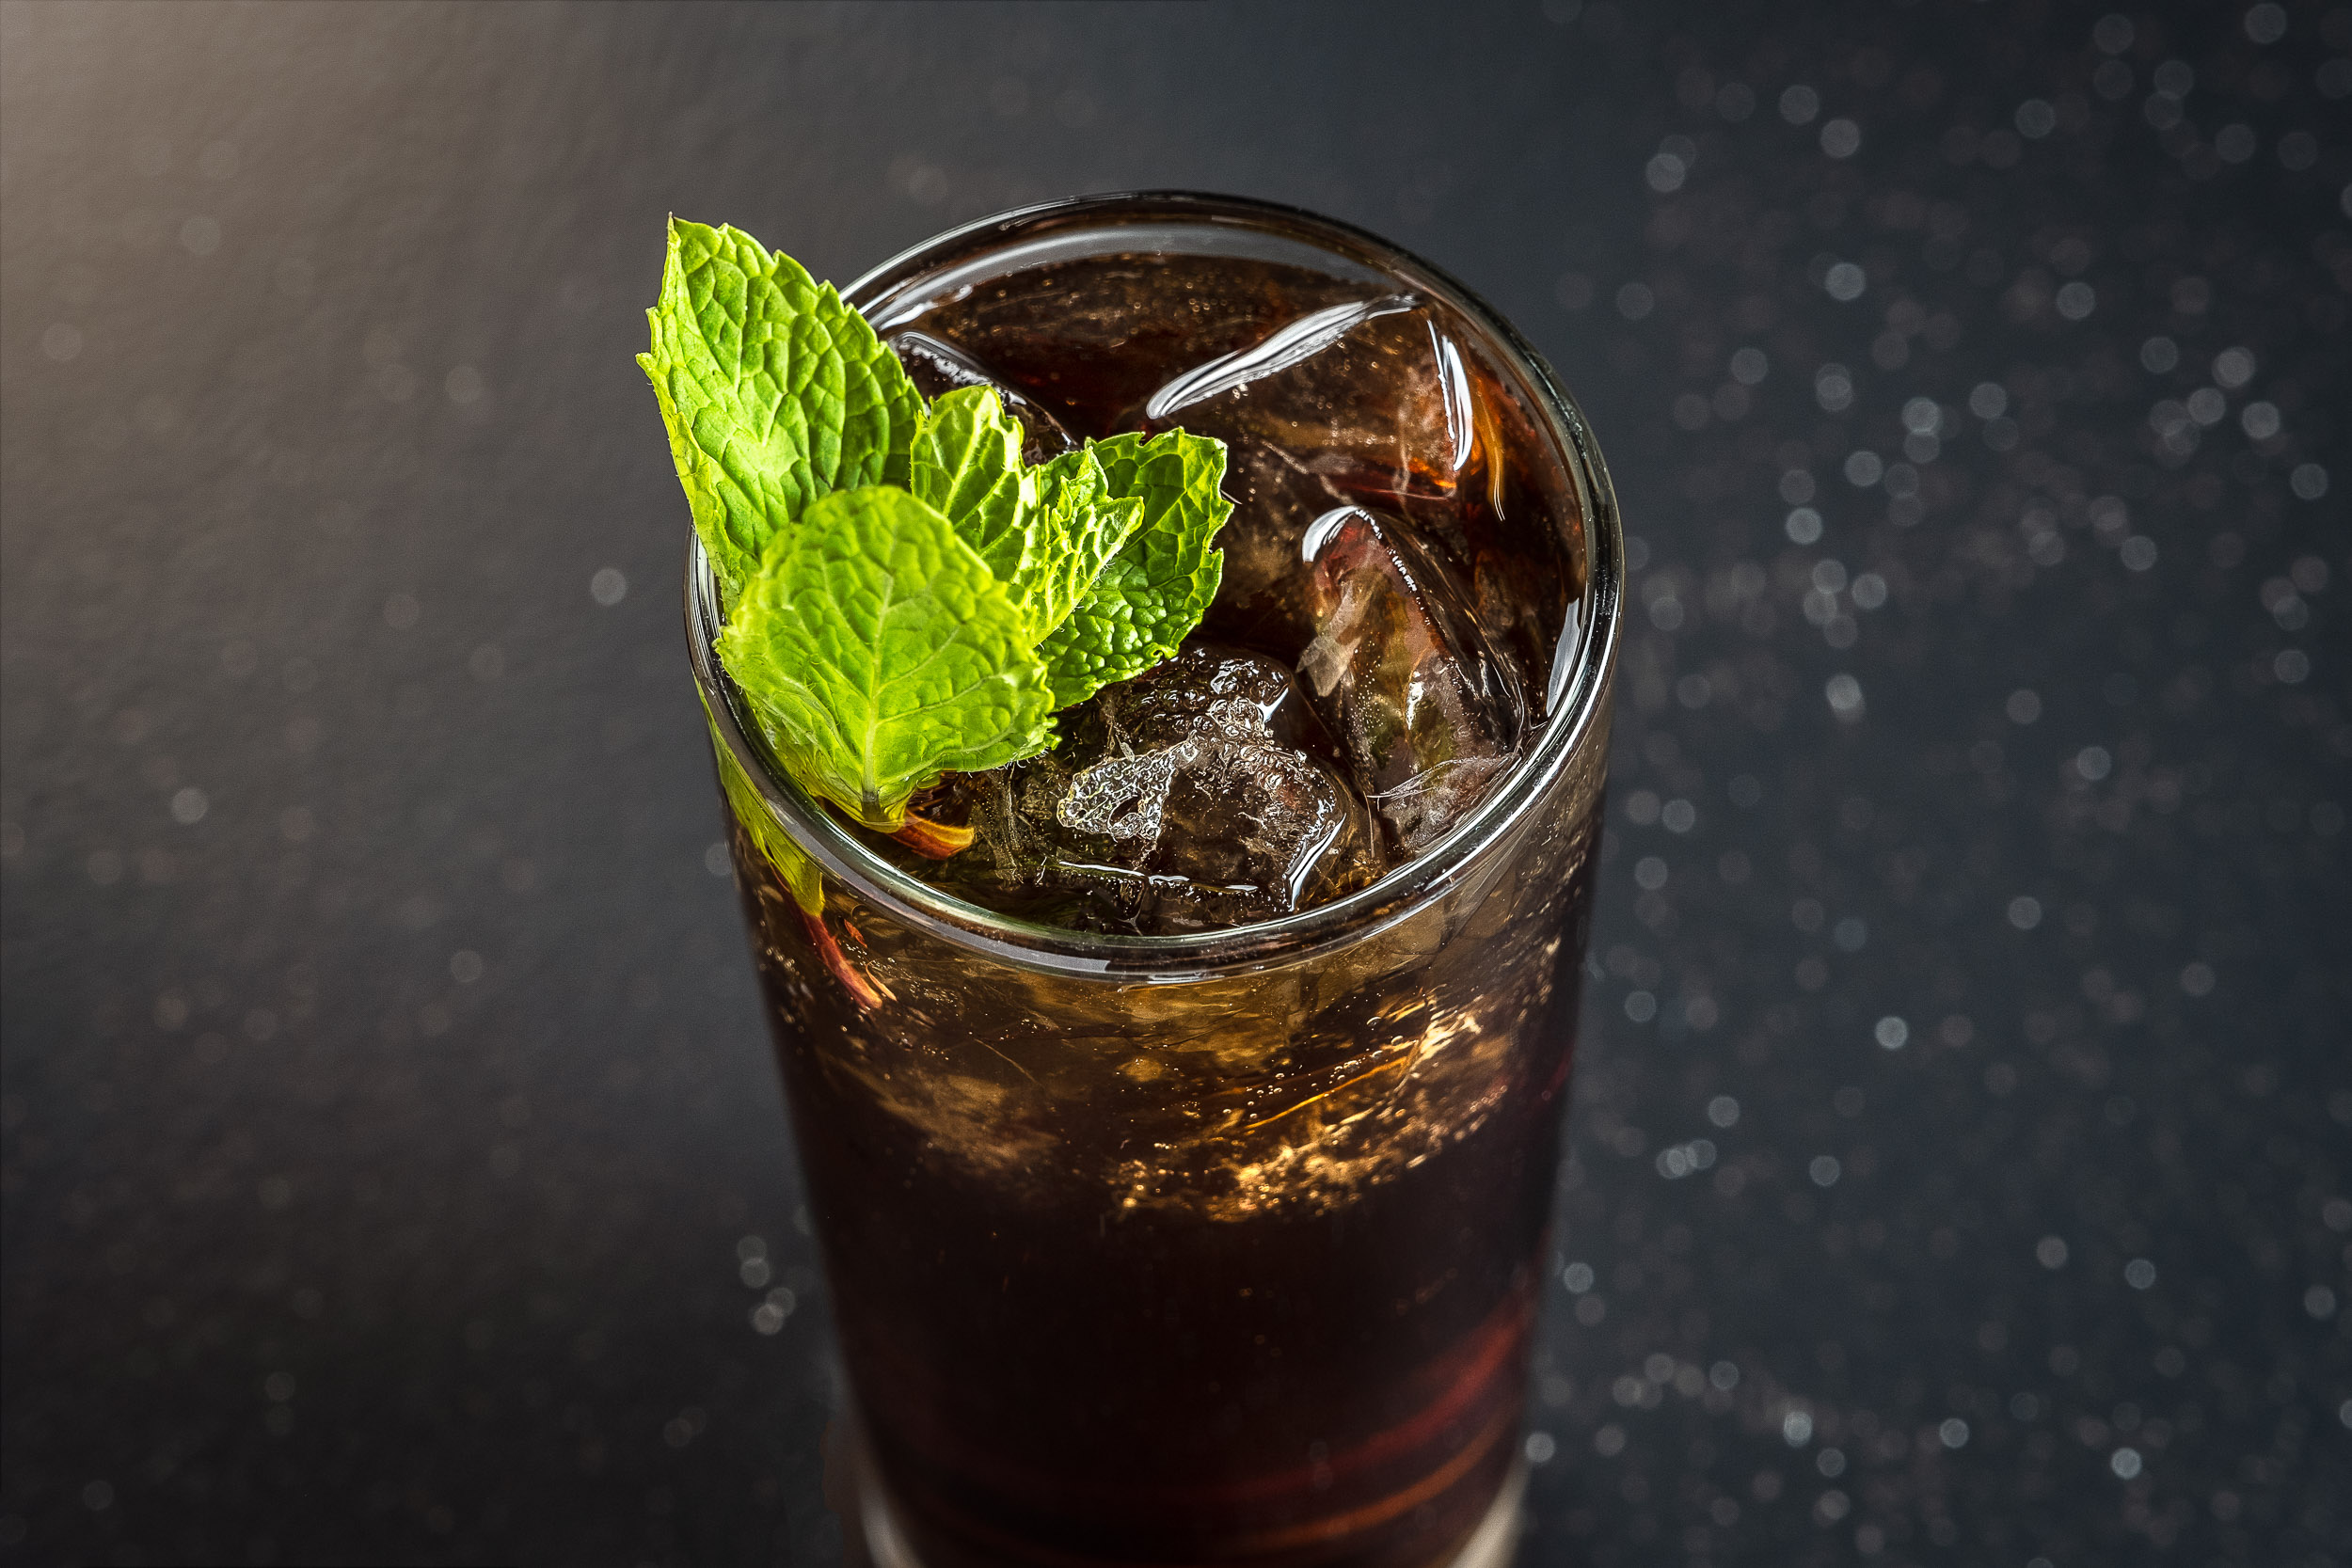 Moody Cocktail with Mint